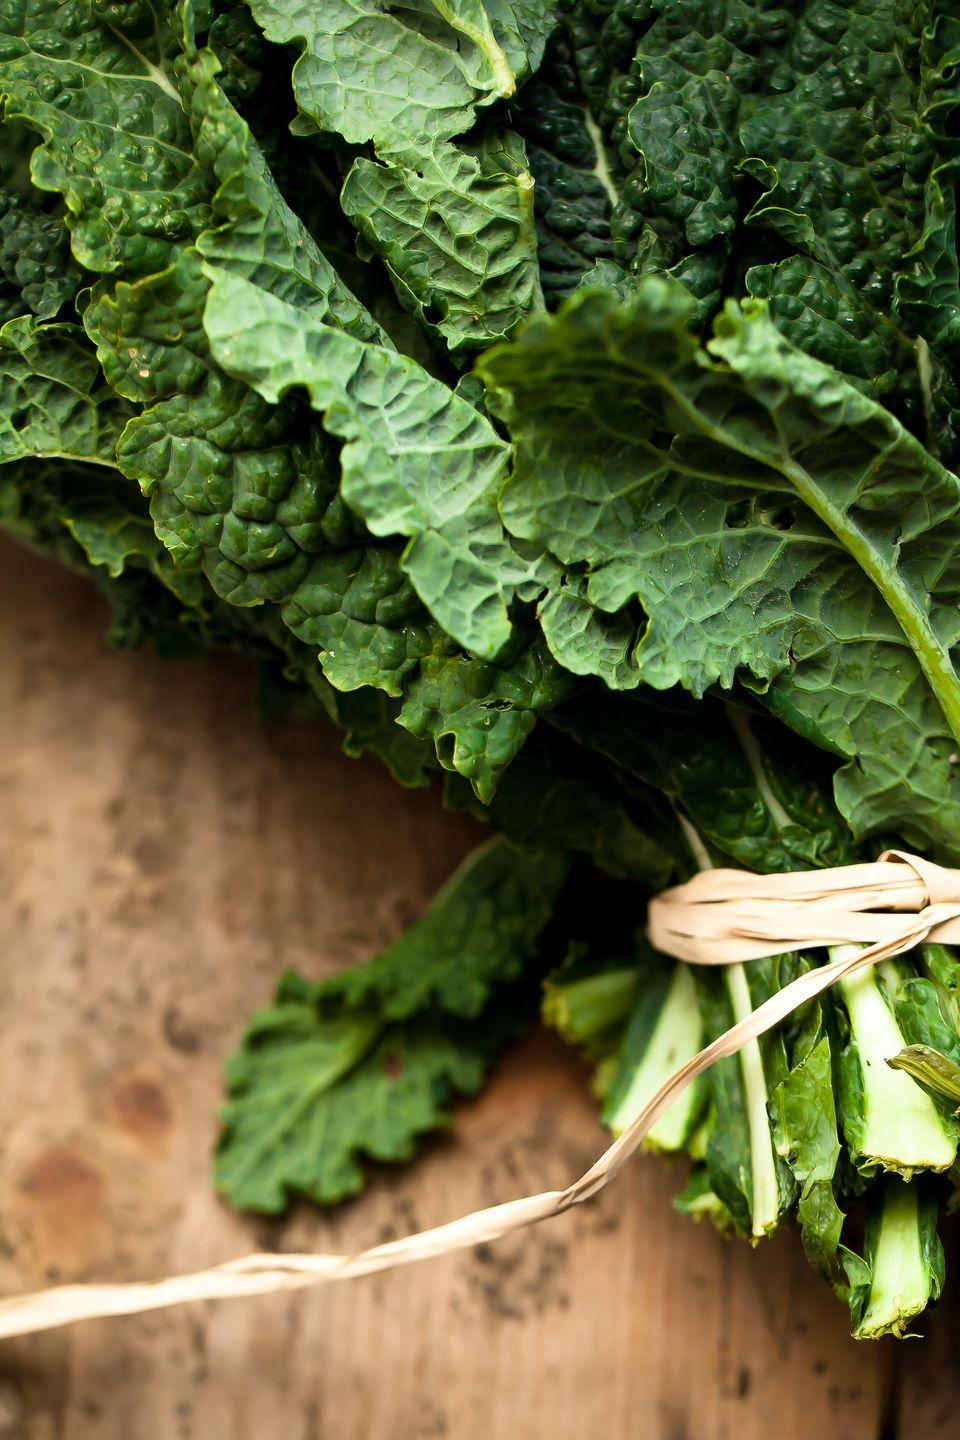 "<p>Potassium, magnesium, antioxidants, fiber: <a href=""https://www.goodhousekeeping.com/health/diet-nutrition/a25587450/kale-nutrition/"" rel=""nofollow noopener"" target=""_blank"" data-ylk=""slk:Kale hits the heart-healthy jackpot"" class=""link rapid-noclick-resp"">Kale hits the heart-healthy jackpot</a>. The minerals in cruciferous vegetables (including cabbage and Brussels sprouts) especially can counterbalance the effects of sodium, warding off hypertension. </p><p><strong>RELATED:</strong> <a href=""https://www.goodhousekeeping.com/food-recipes/healthy/g1436/easy-kale-recipes/"" rel=""nofollow noopener"" target=""_blank"" data-ylk=""slk:30+ Quick and Easy Kale Recipes"" class=""link rapid-noclick-resp"">30+ Quick and Easy Kale Recipes</a></p>"